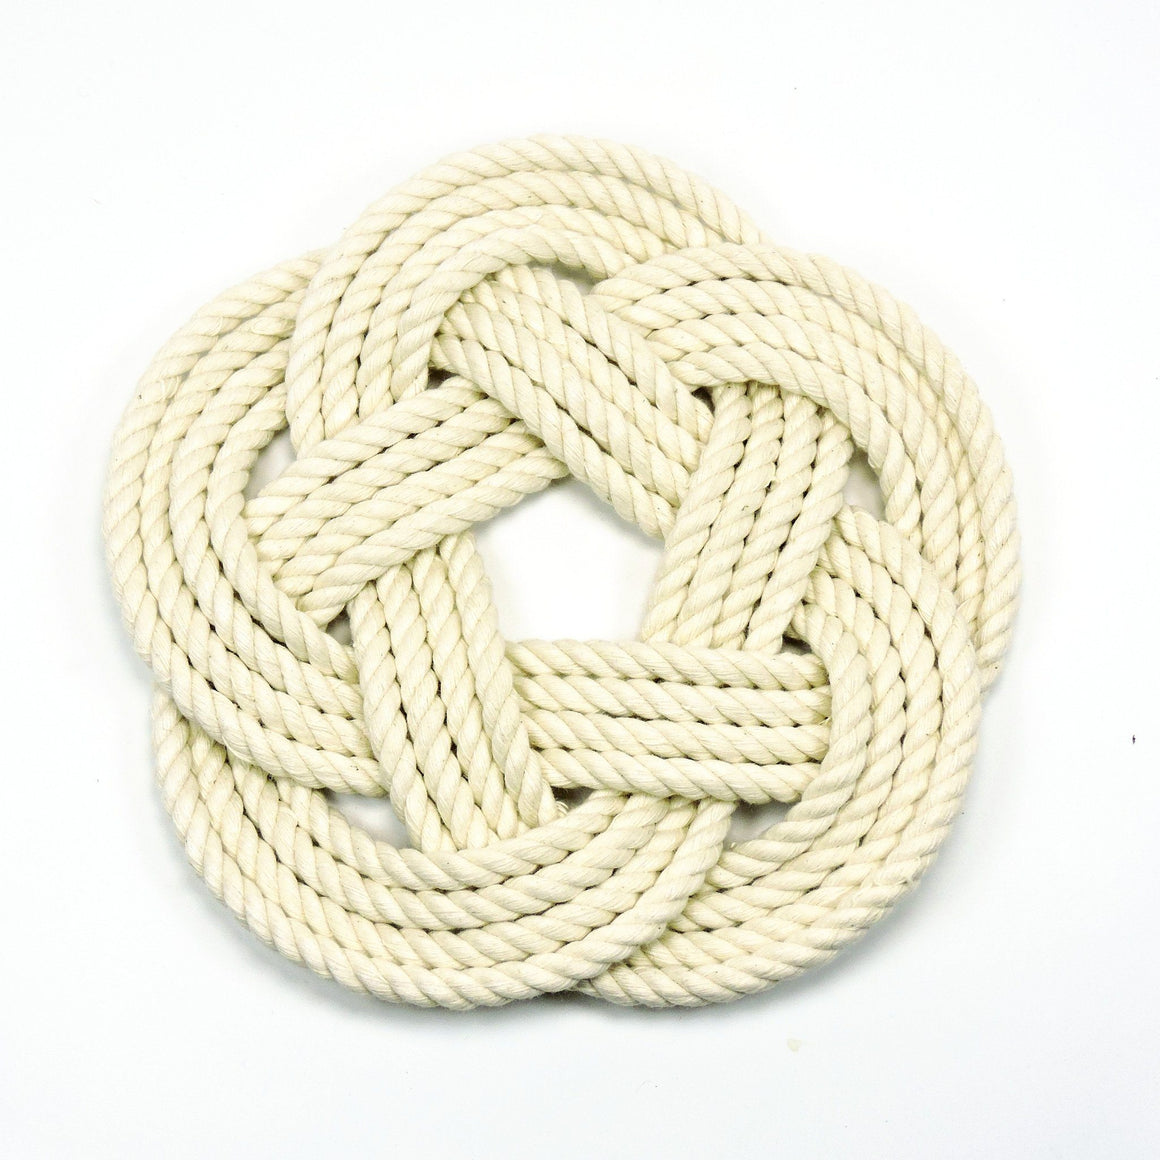 Nautical Sailor Knot Trivet, Natural Cotton Rope, Small - Mystic Knotwork nautical knot